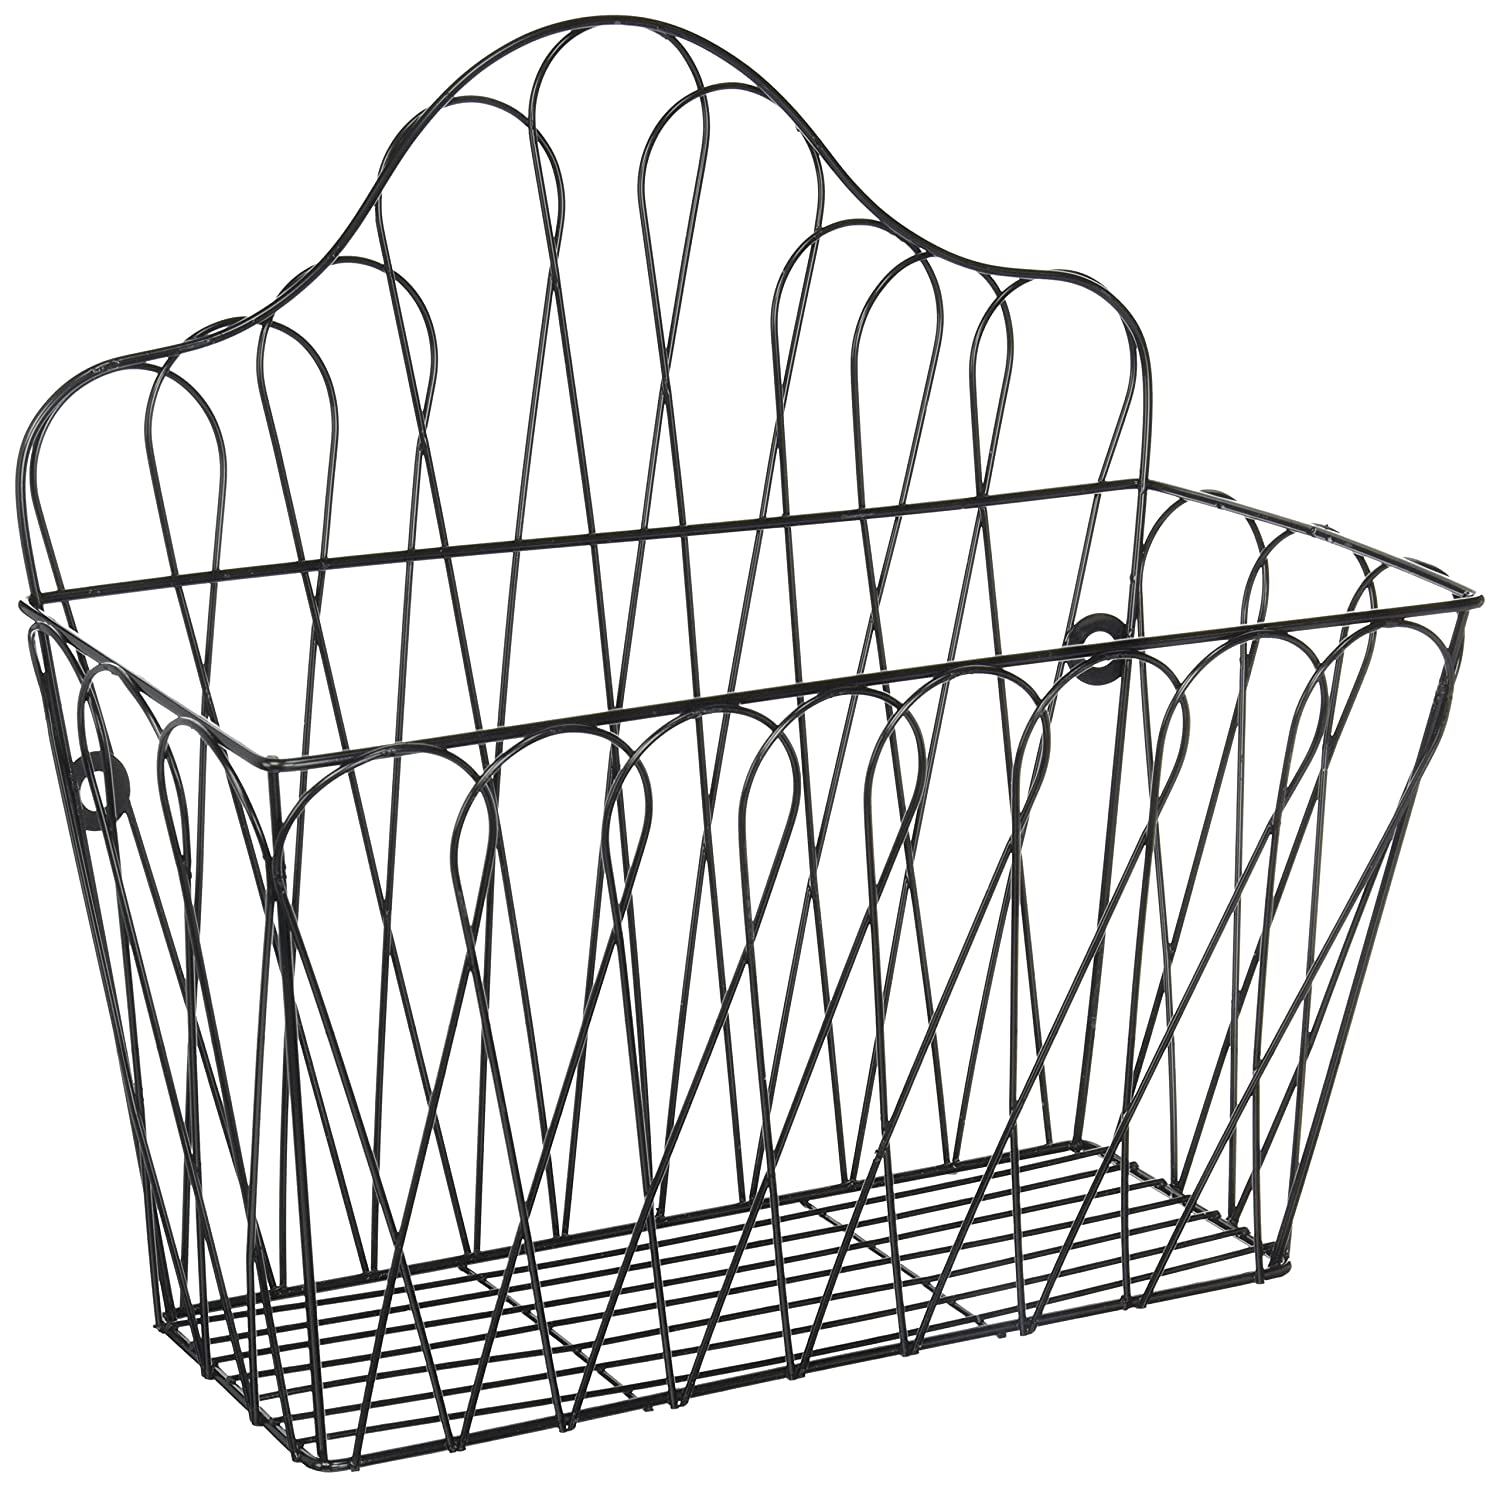 Decorative Wall Mounted Metal Magazine and Storage Rack by Trademark Innovations MAGRACK-METAL